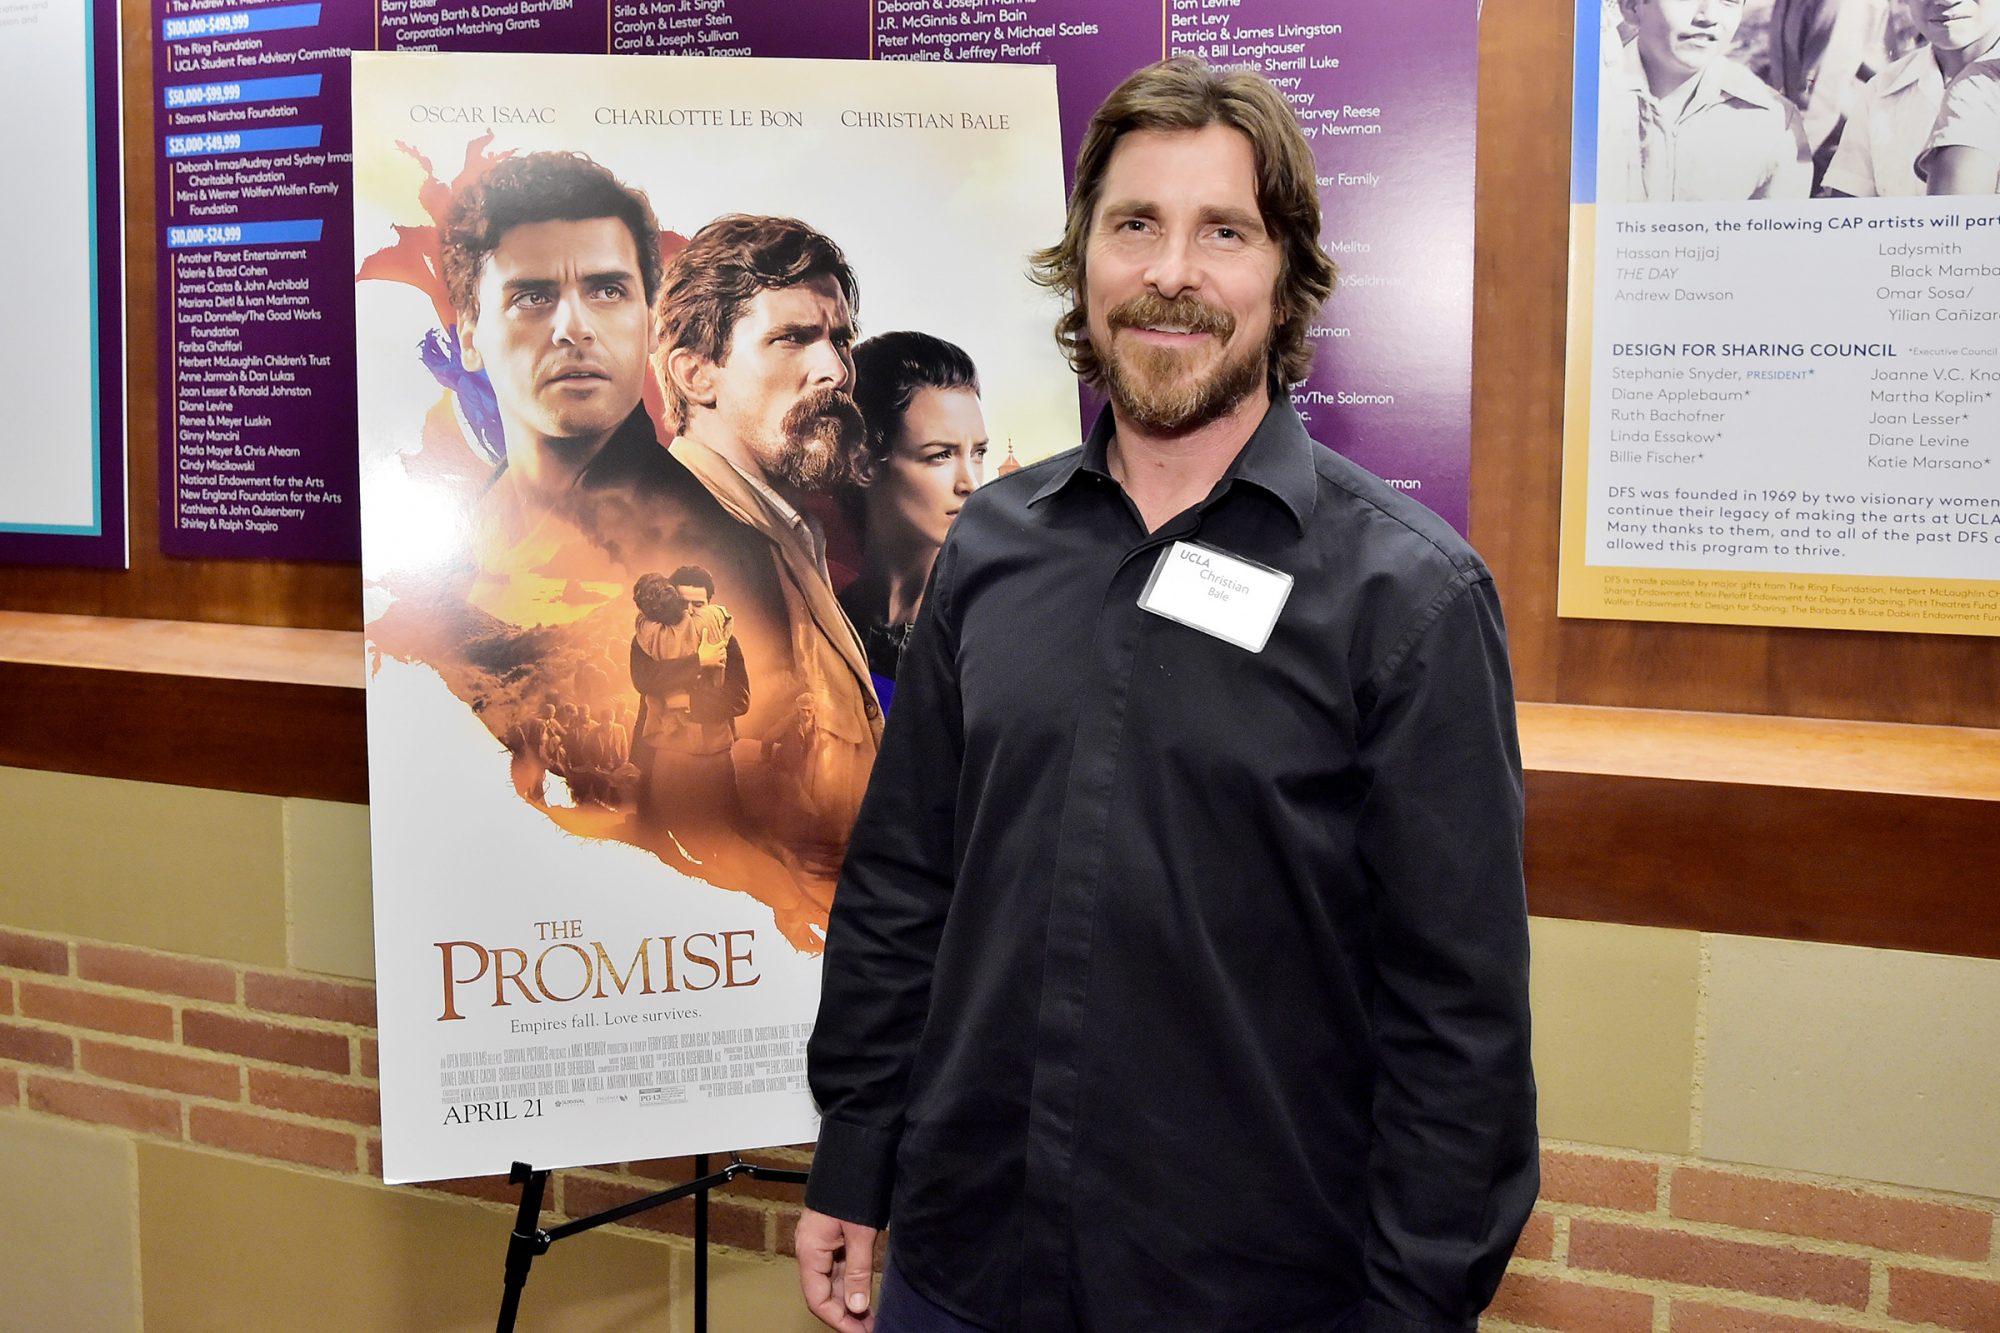 Christian Bale attends The Promise Armenian Institute Event At UCLA at Royce Hall on November 19, 2019 in Los Angeles, California